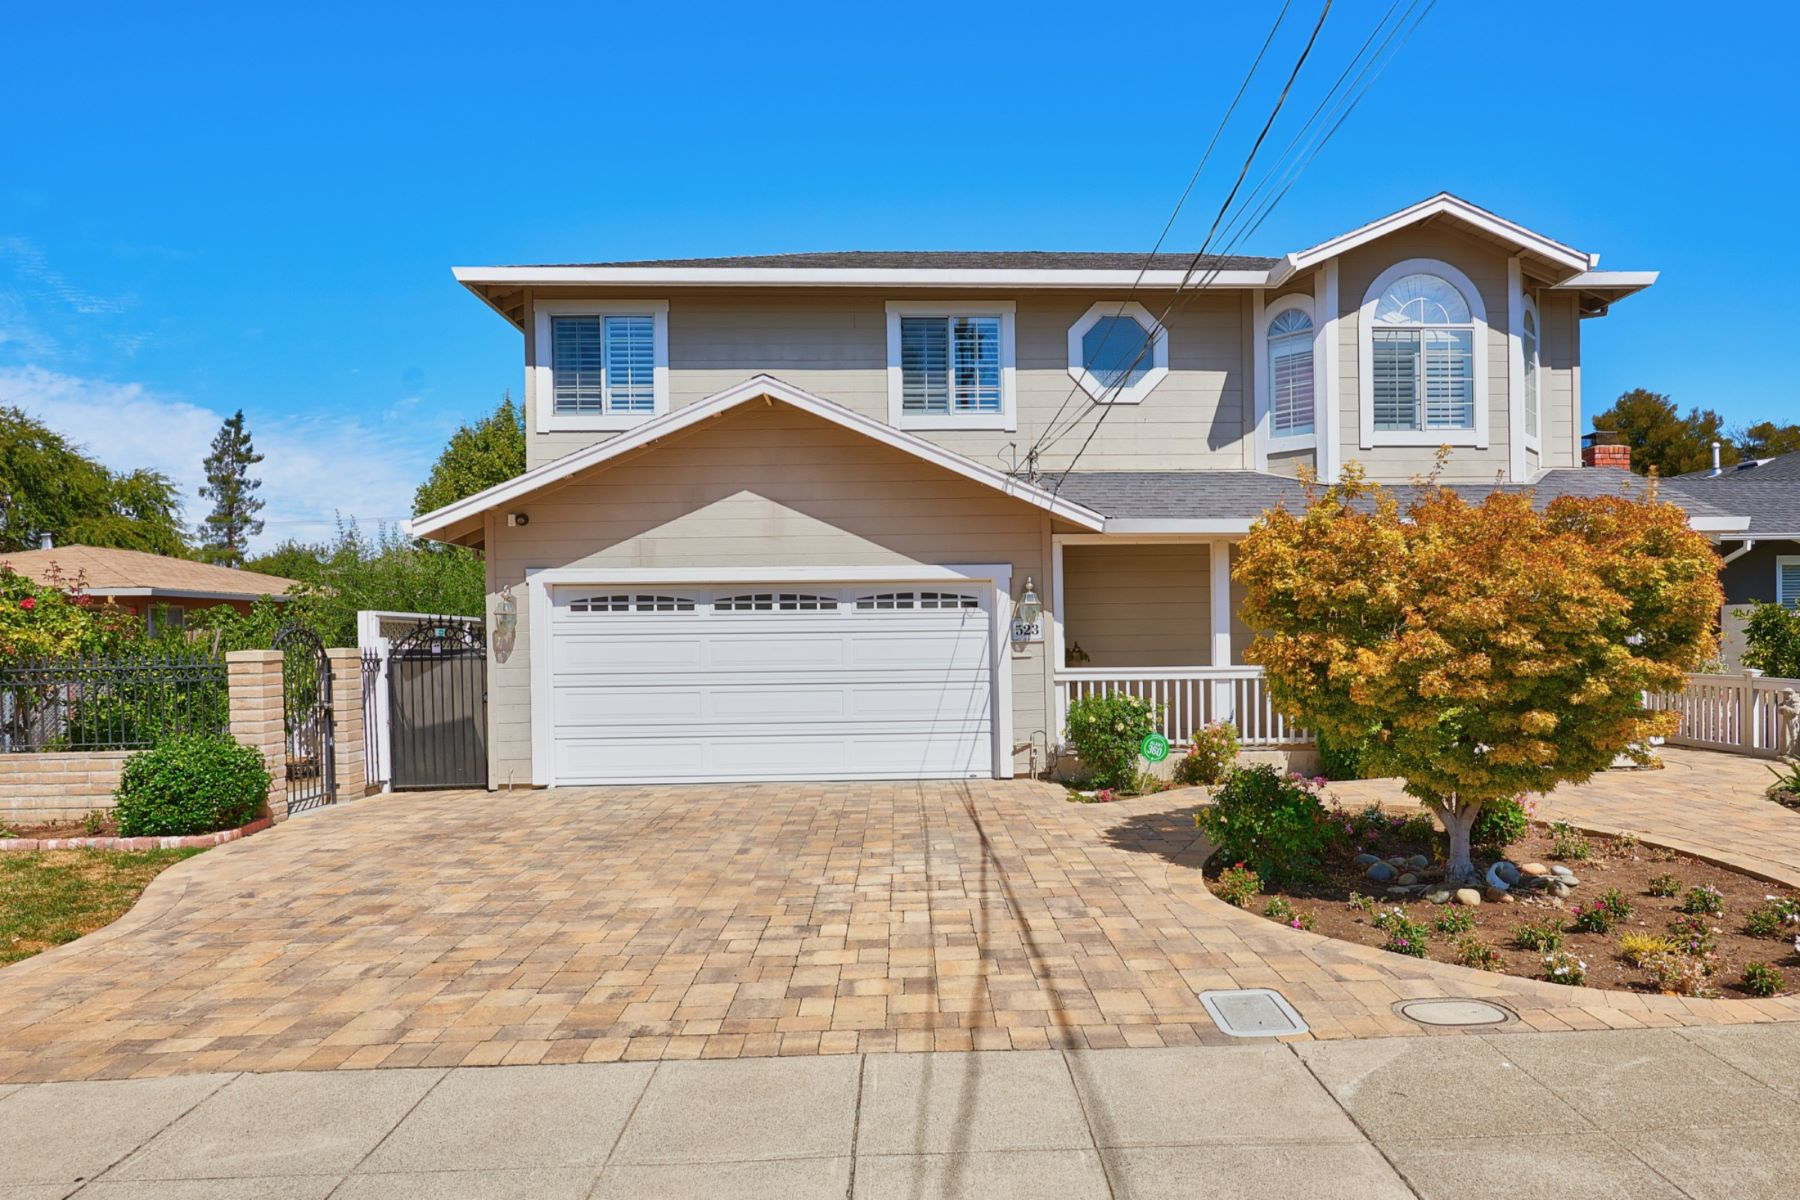 Single Family Home for Active at Not Your Regular Ranch Style Home 523 Topaz Street Redwood City, California 94062 United States